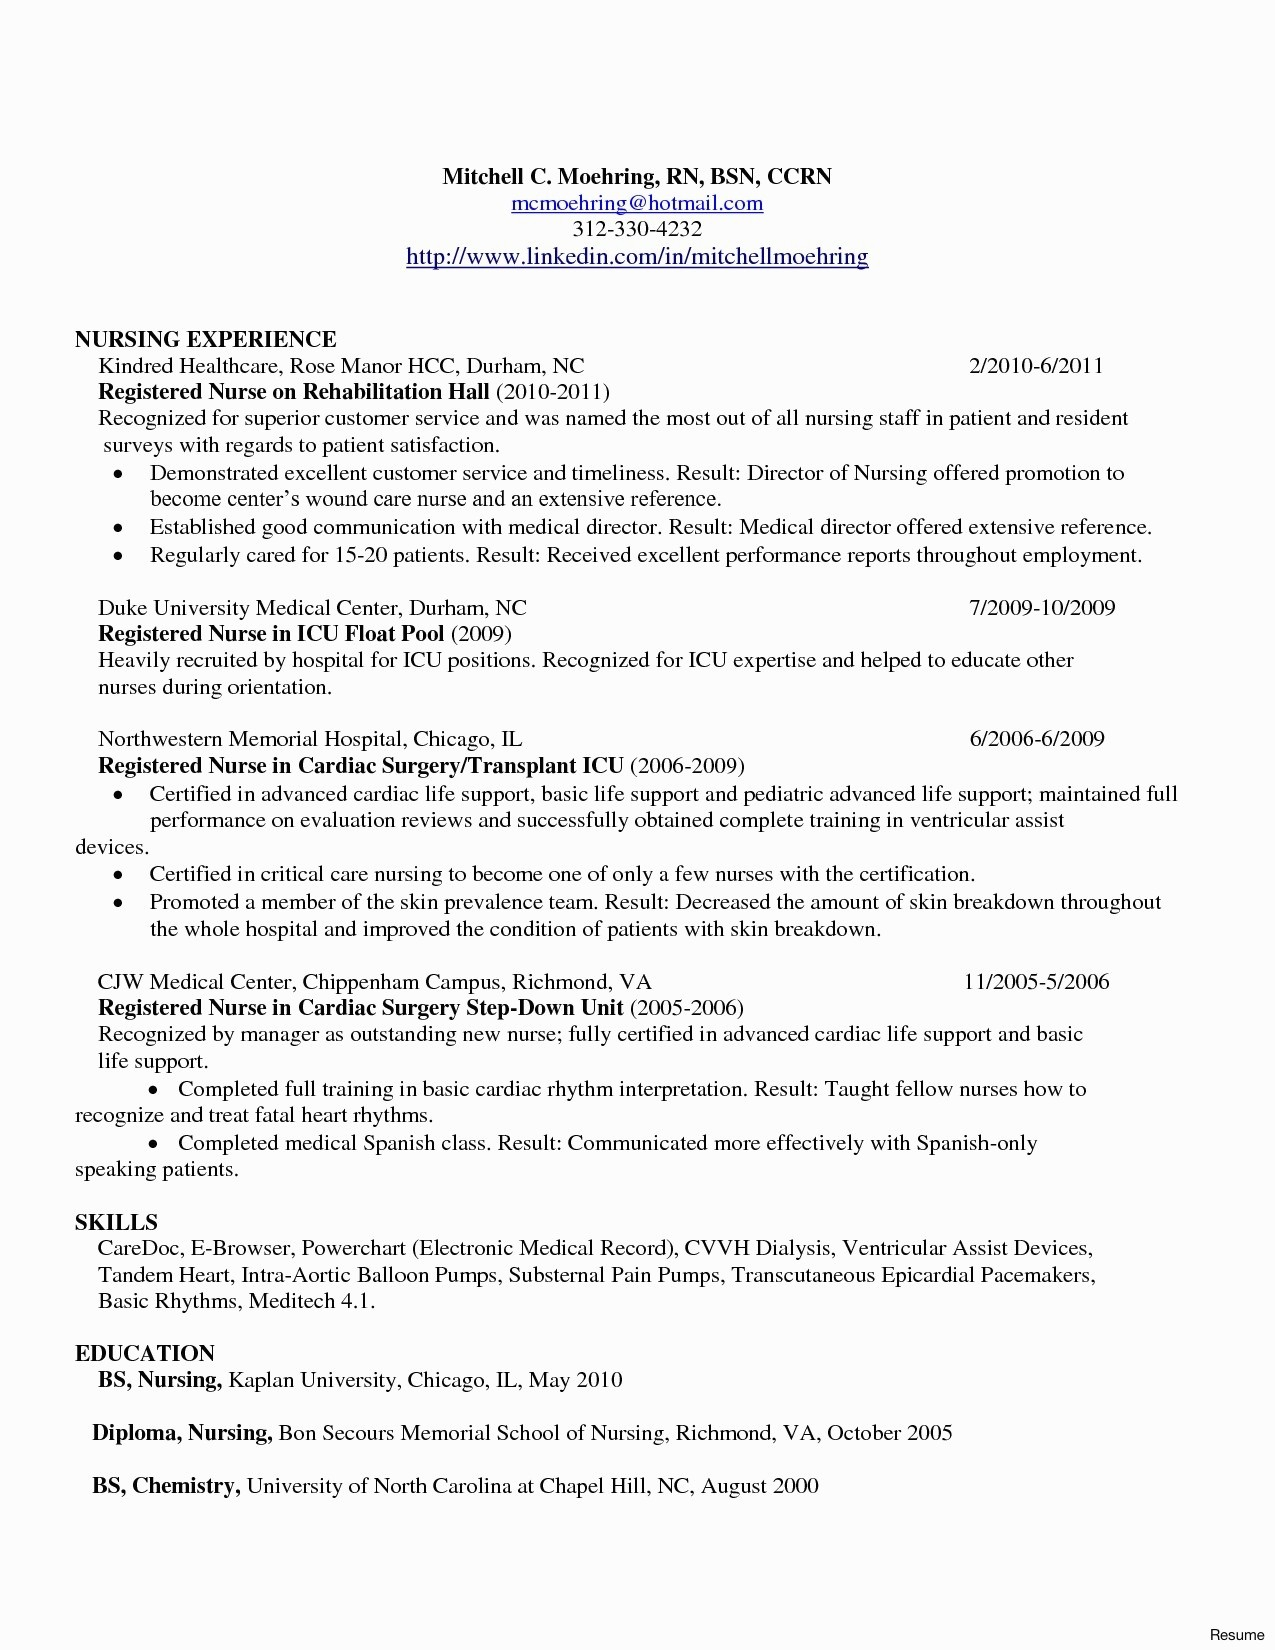 Nurse Manager Resume Template - Resume Descriptions for Registered Nurses Resume Resume Examples